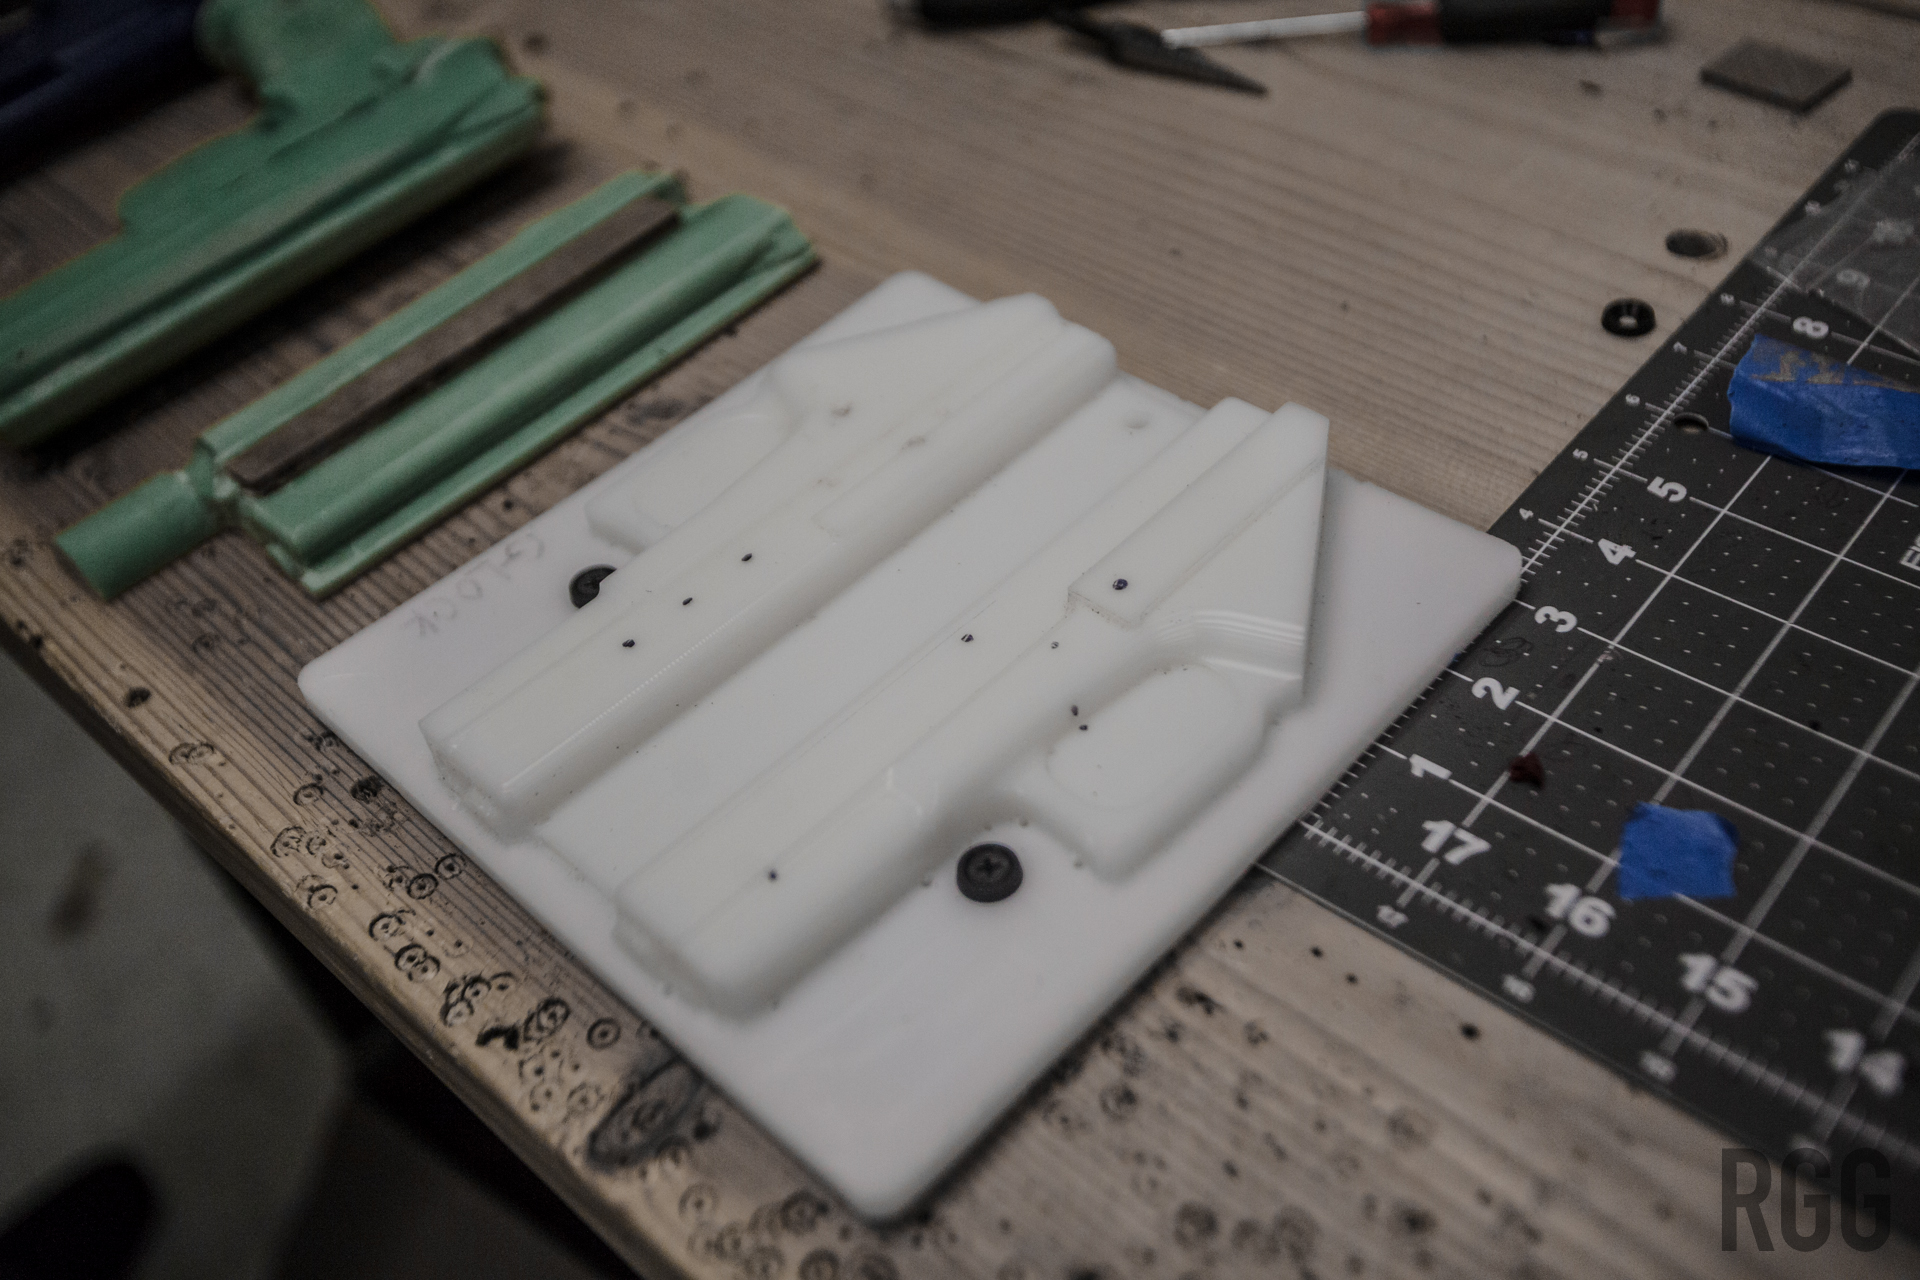 A mold for the first step of forming a Kydex holster